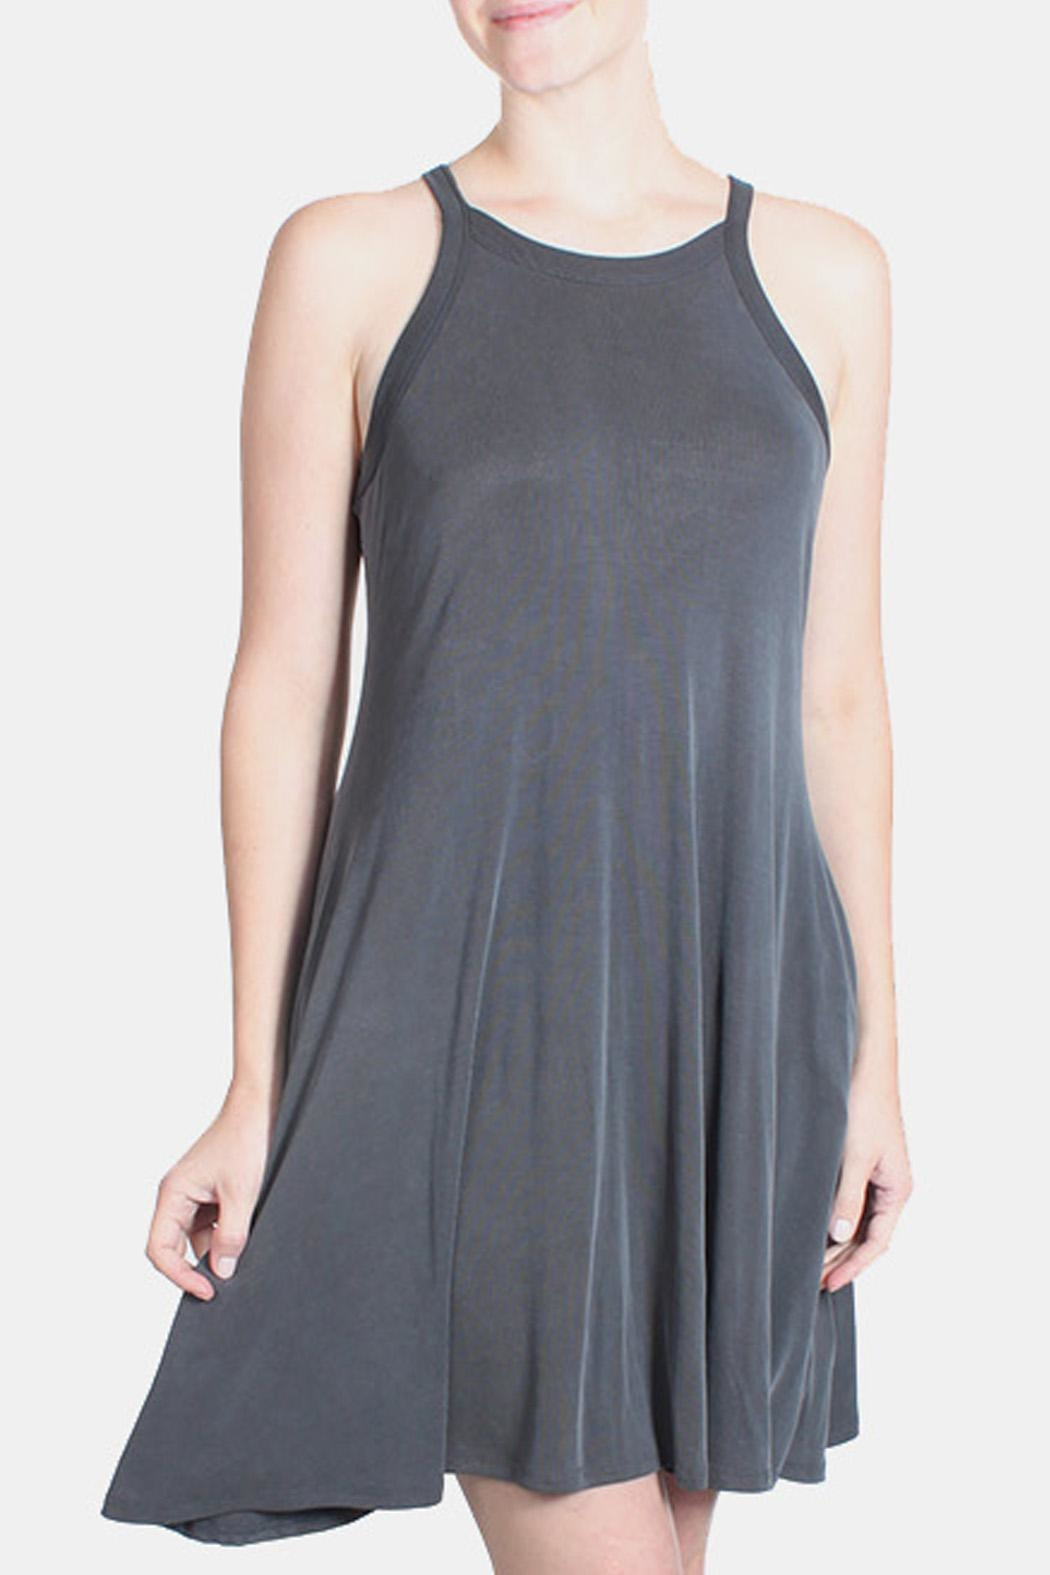 Chris & Carol Charcoal Ribbed Dress - Main Image